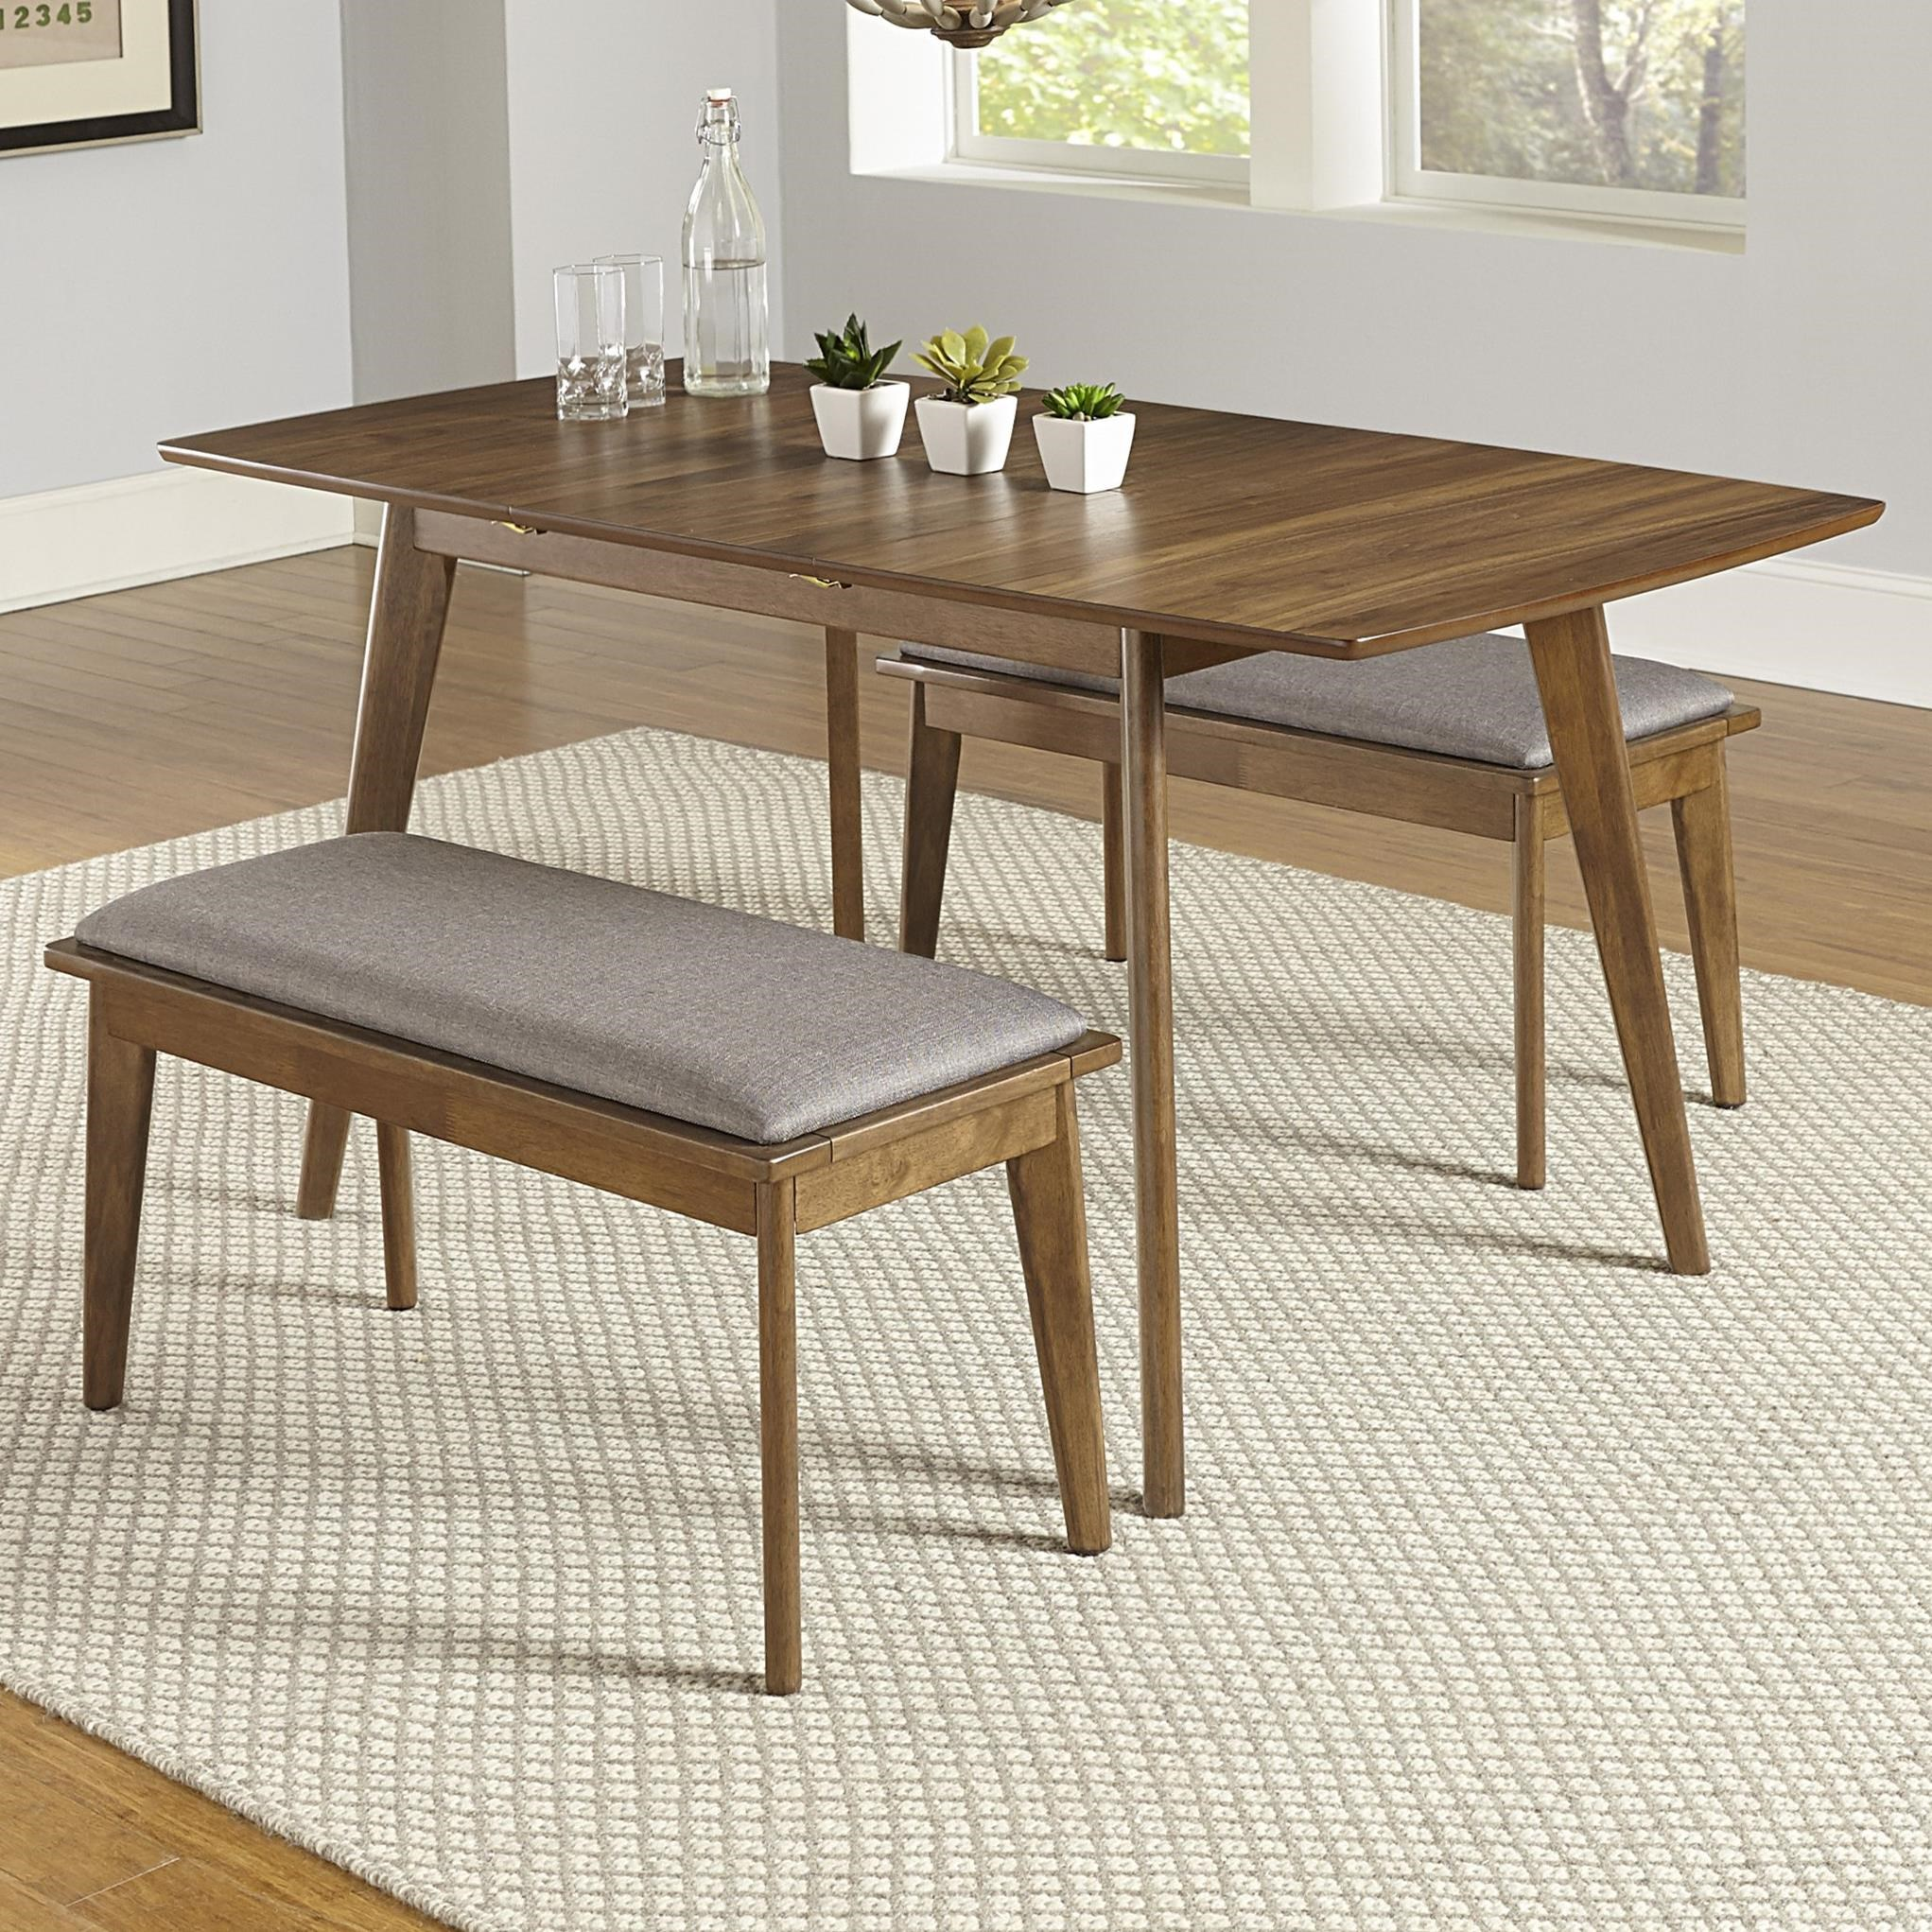 Arcade 3-Piece Butterfly Table Set with 2 Benches by Progressive Furniture at Catalog Outlet